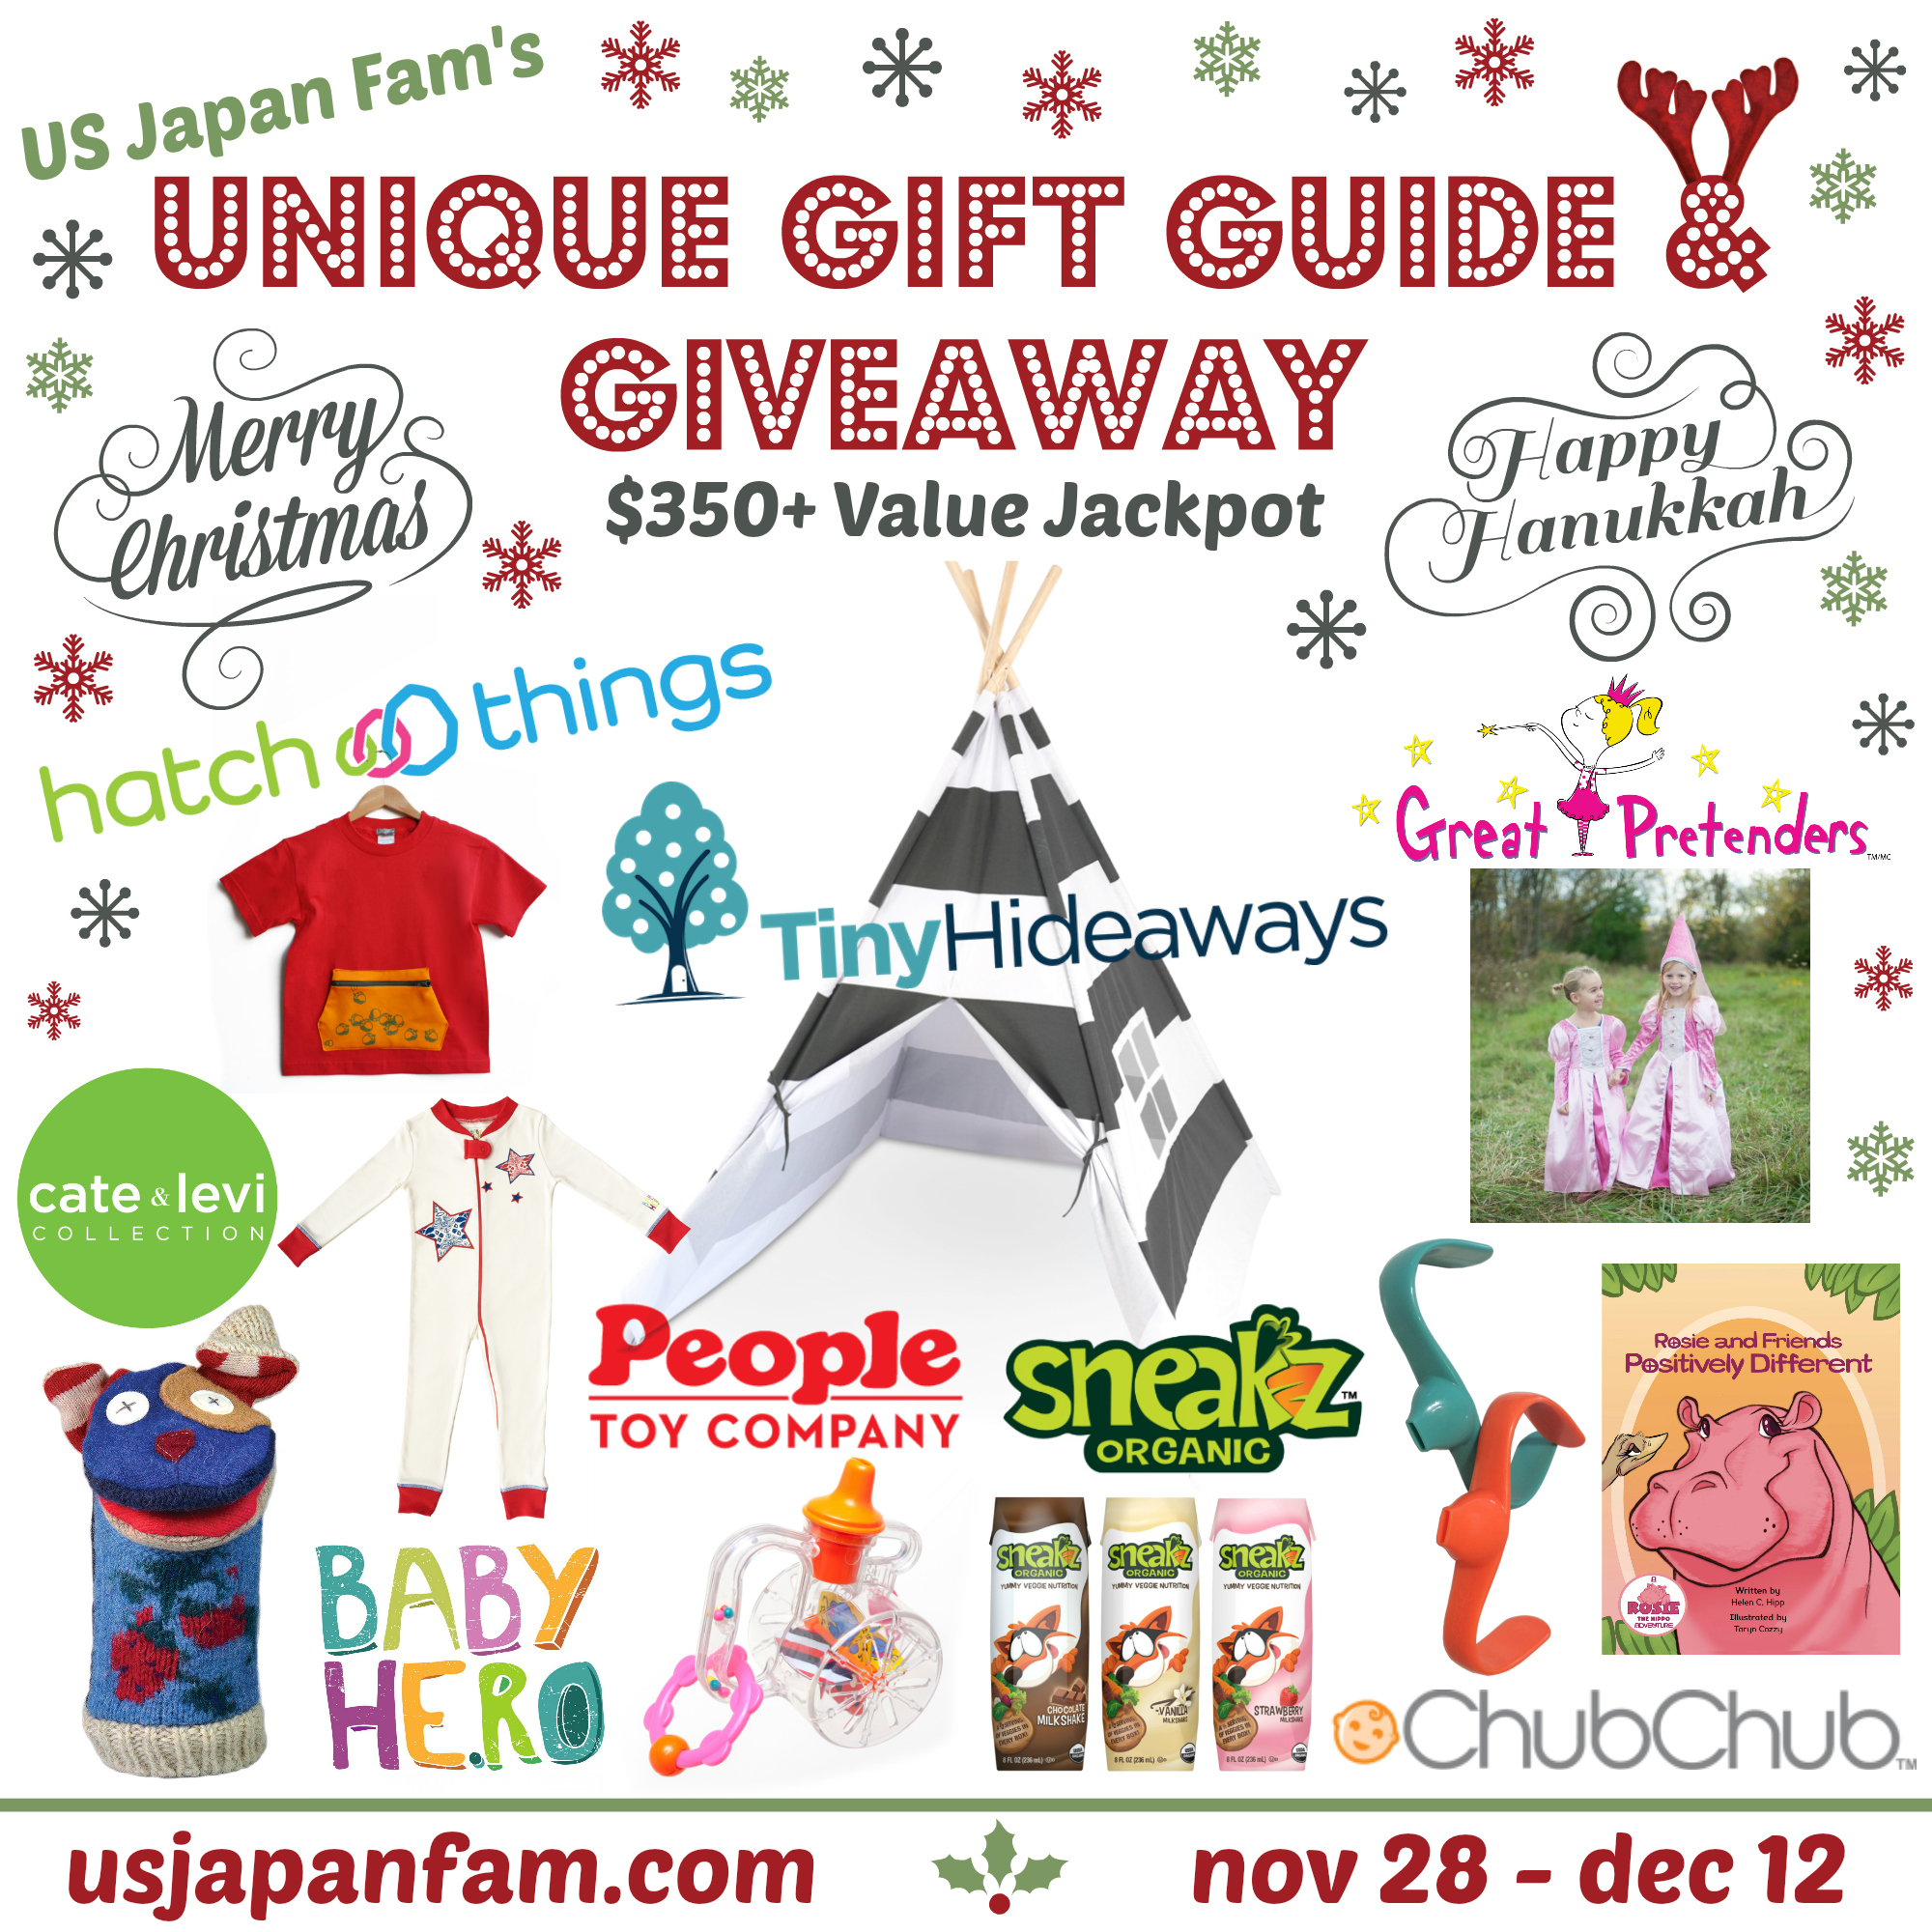 US Japan Fam's Unique Gift Guide & Giveaway for Toddlers